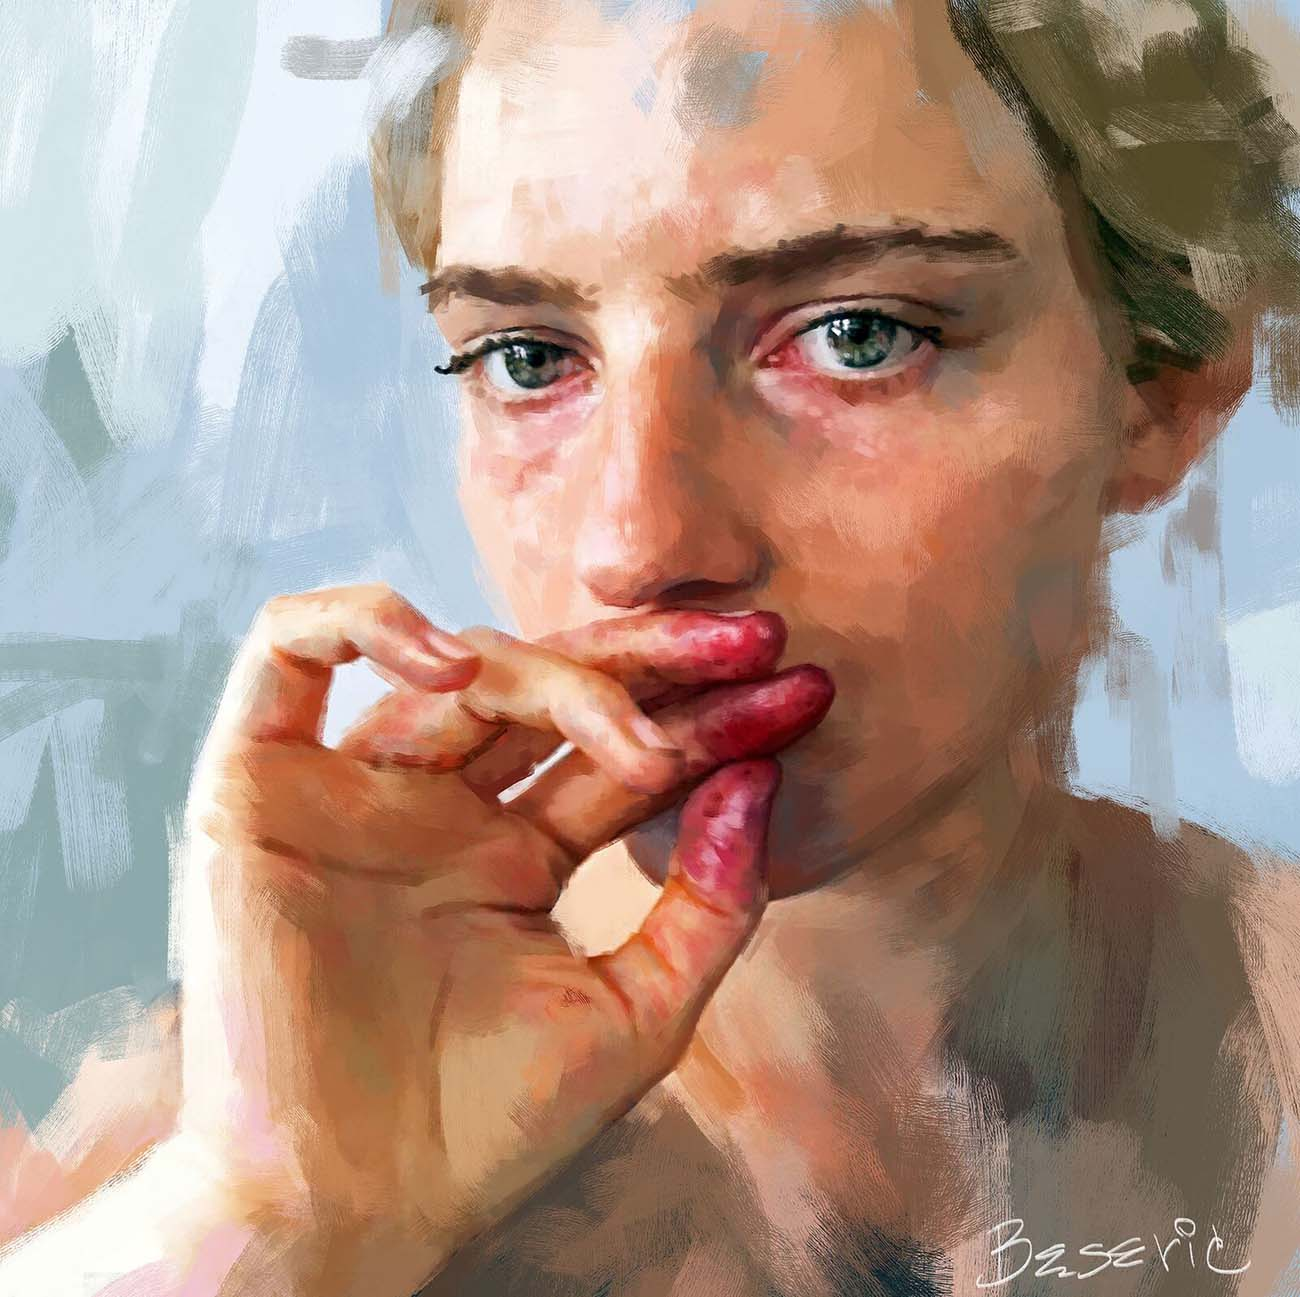 Ivana Besevic | Paintable.cc Digital Painting Inspiration - Learn the Art of Digital Painting! #digitalpainting #digitalart